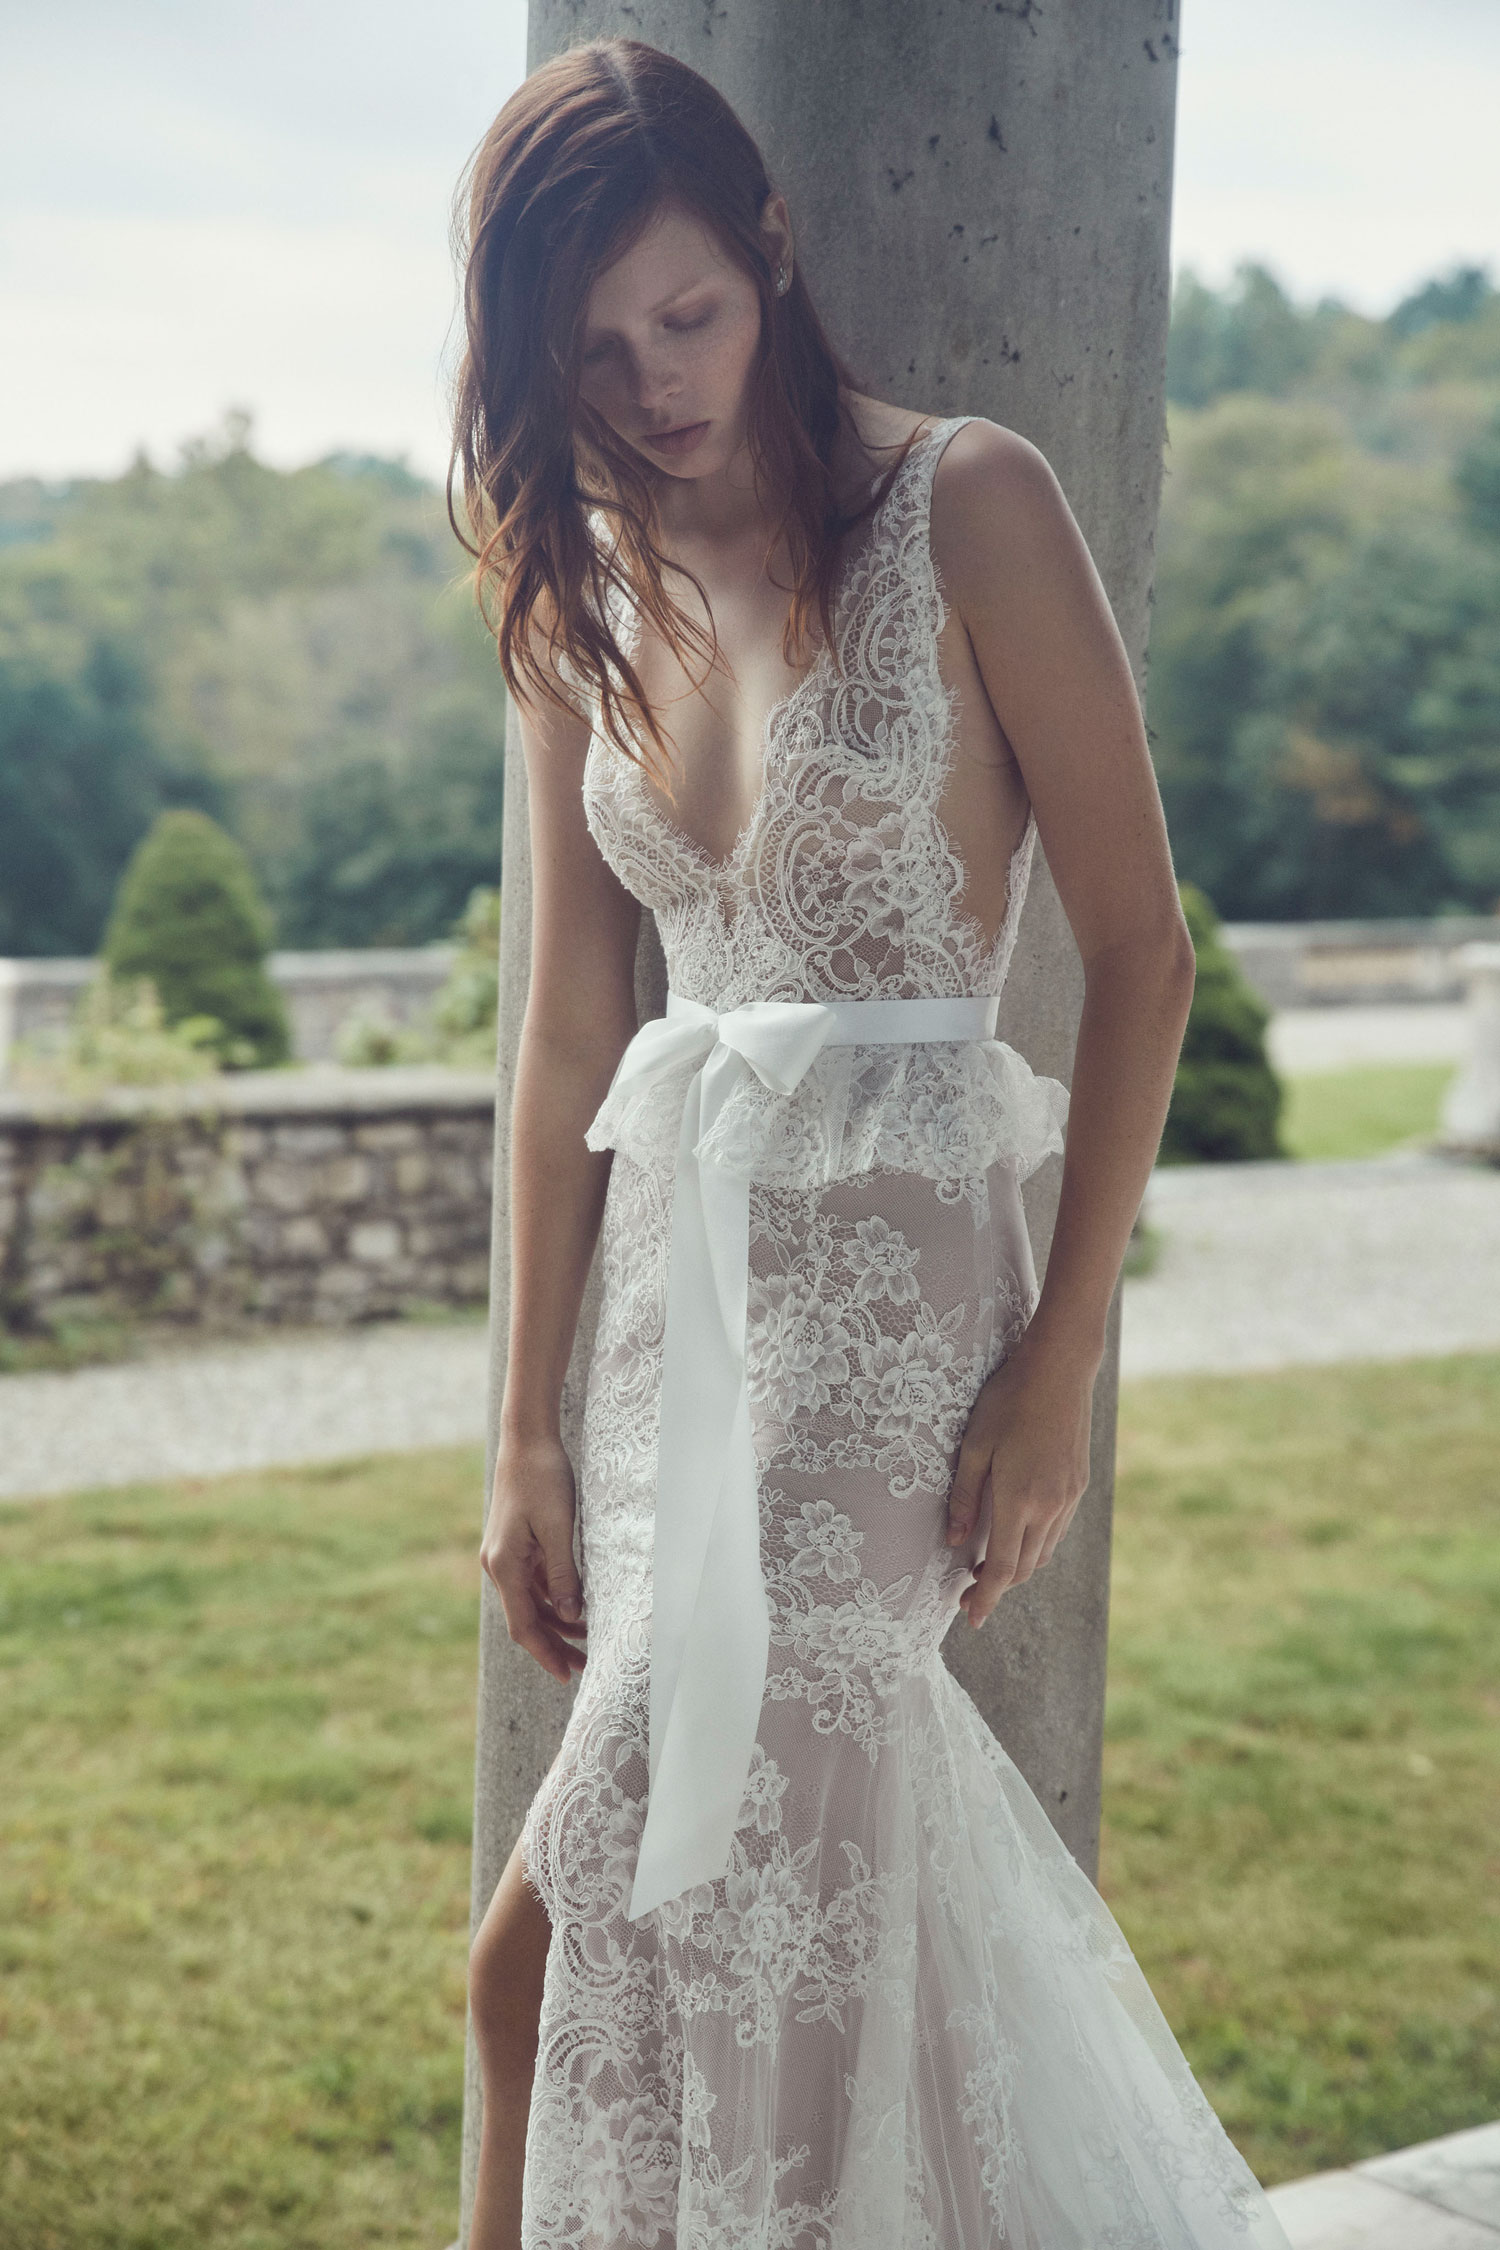 Monique Lhuillier wedding dress lace bridal gown with large bow in front